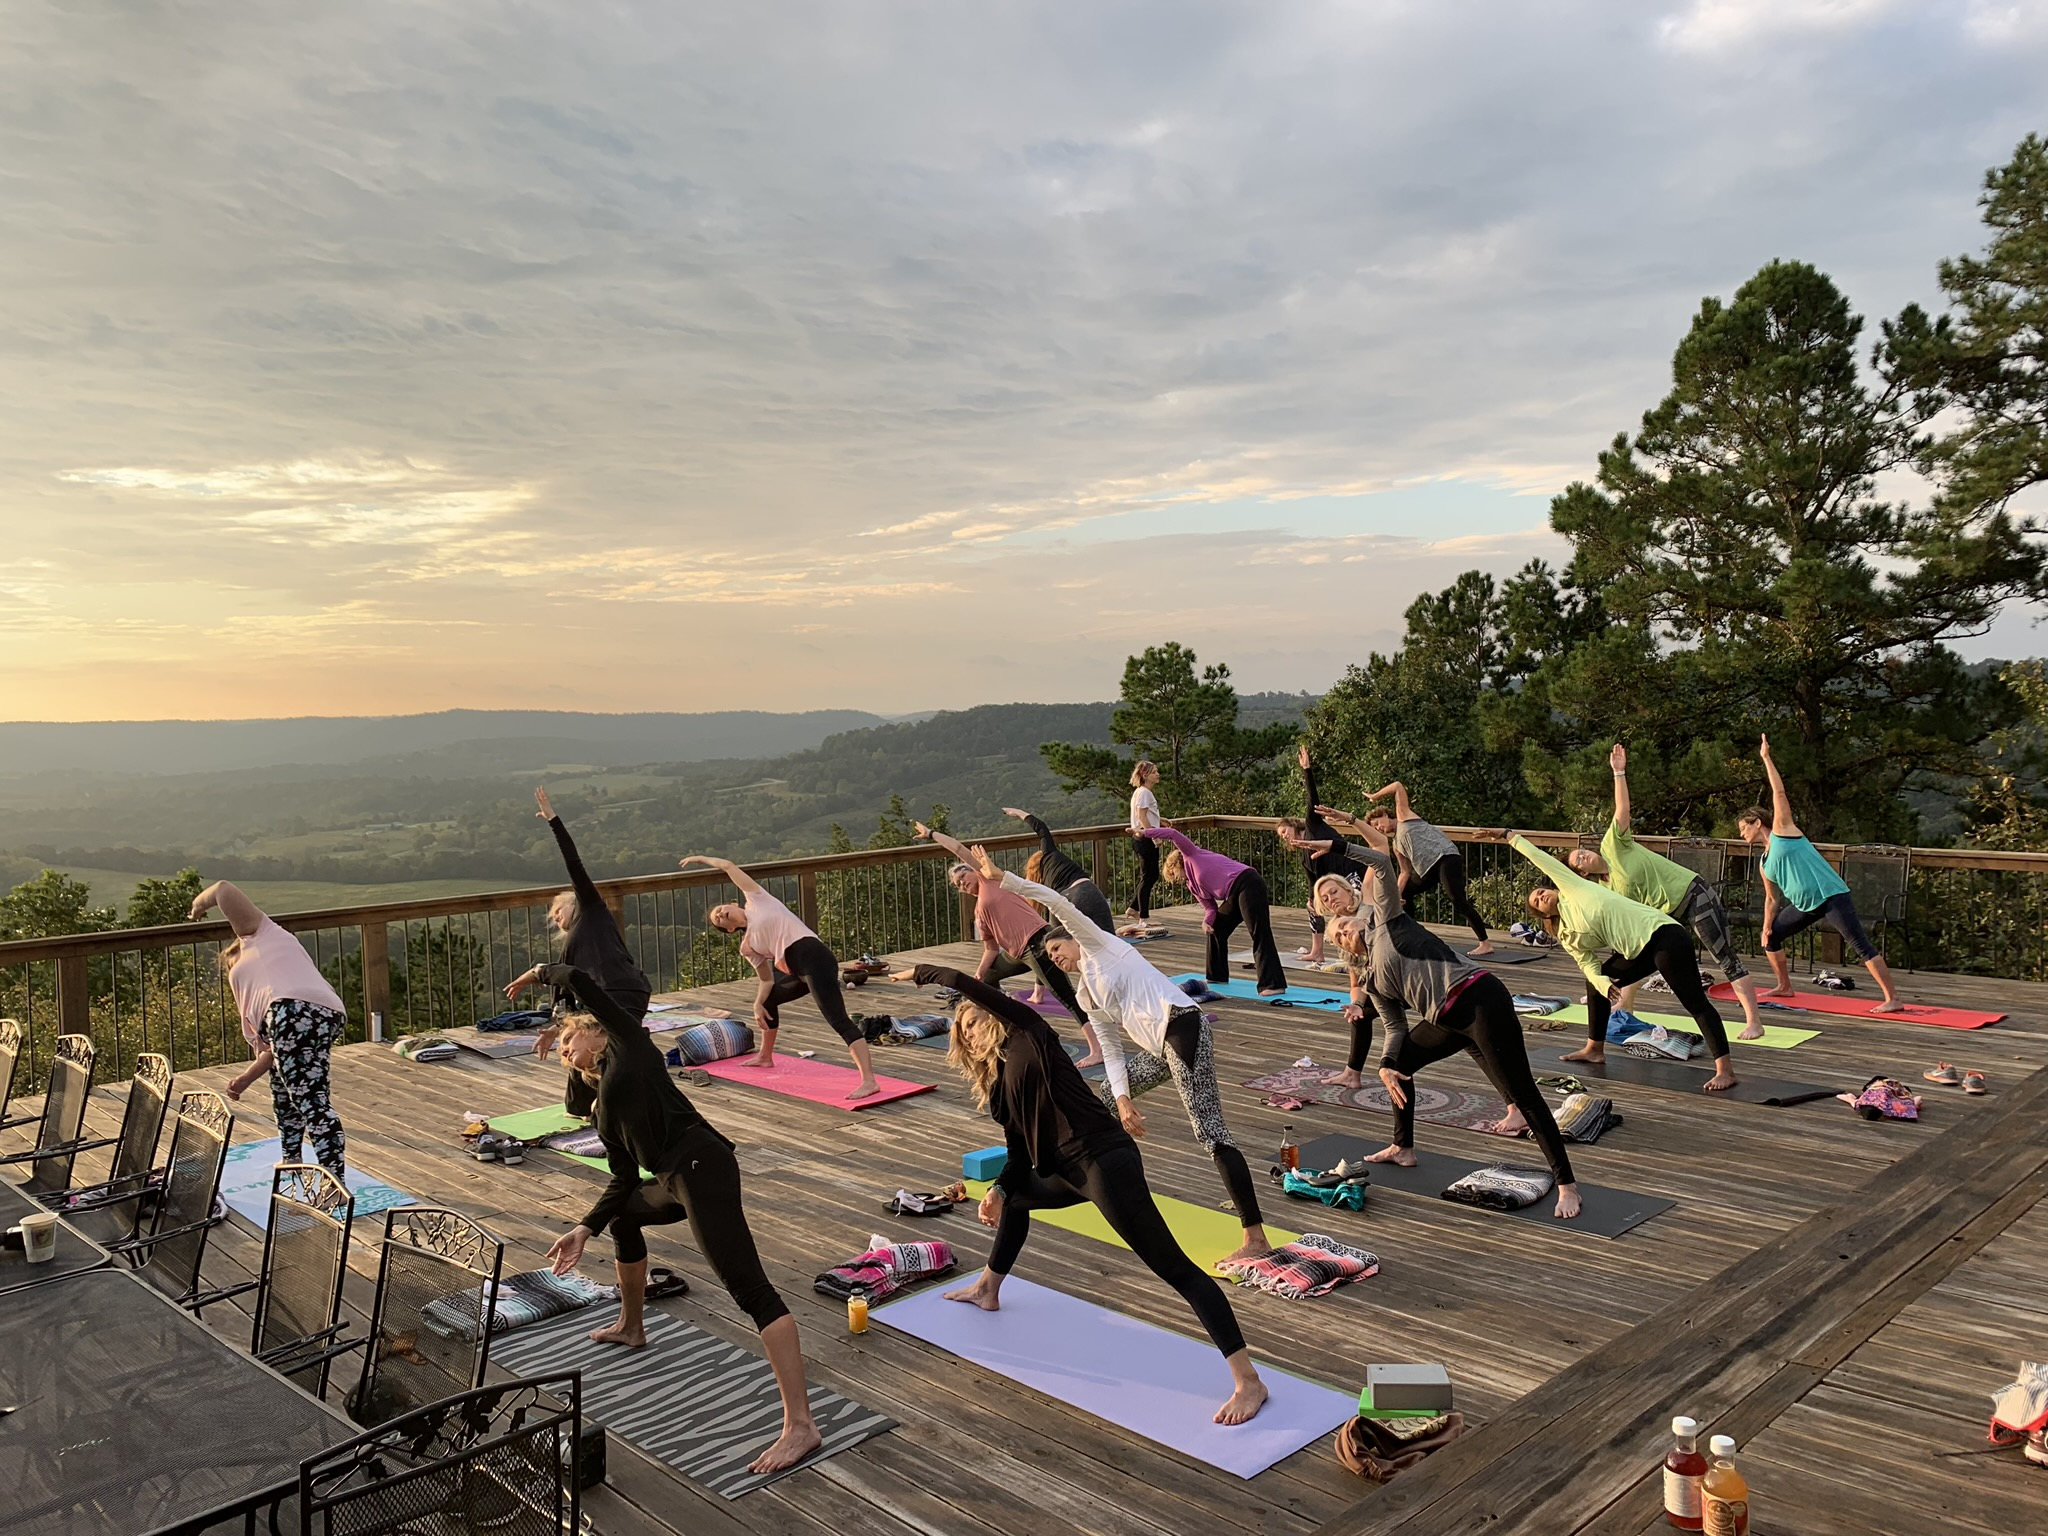 Sunrise yoga with Angela Braun